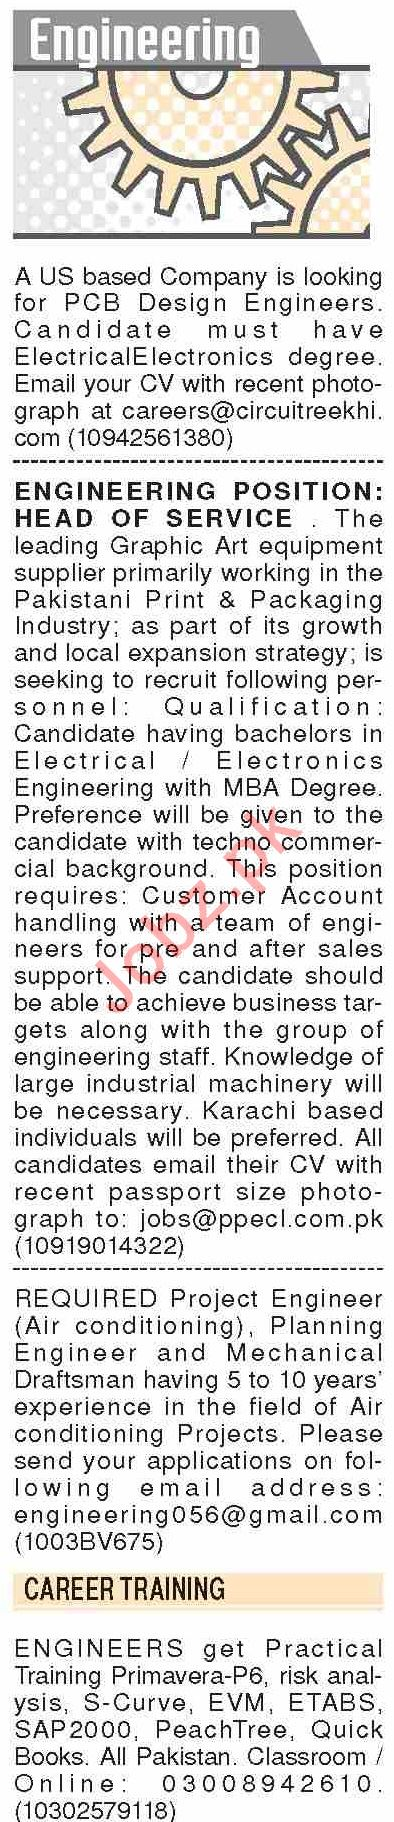 Dawn Sunday Classified Ads 12 Jan 2020 for Engineering Staff